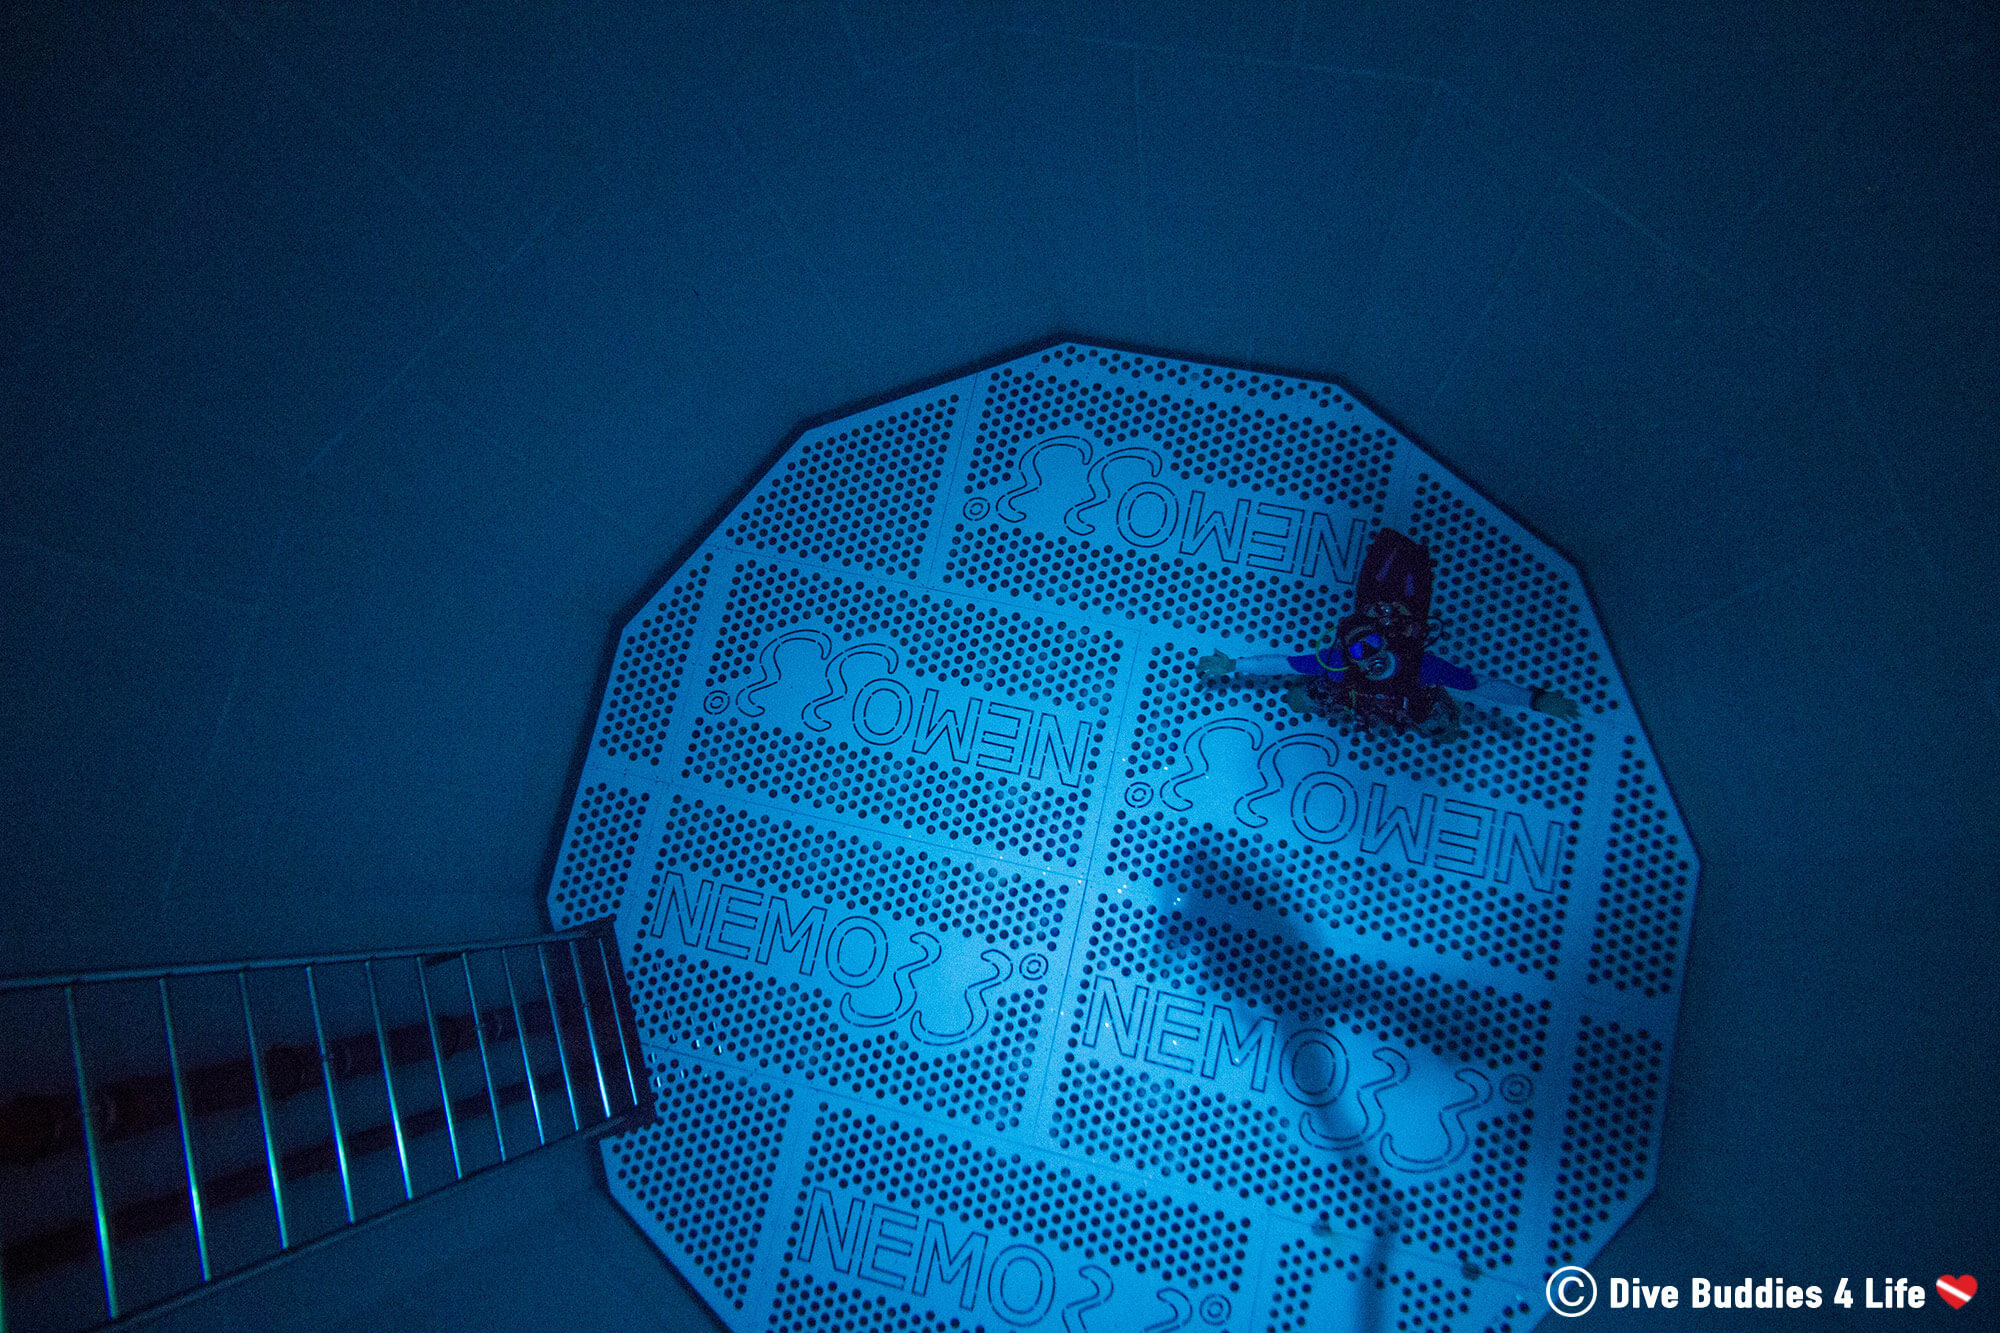 Joey Sitting On The Bottom Of The Nemo 33 Indoor Pool In Scuba Diving Gear Looking Into The Water, Belgium, Europe